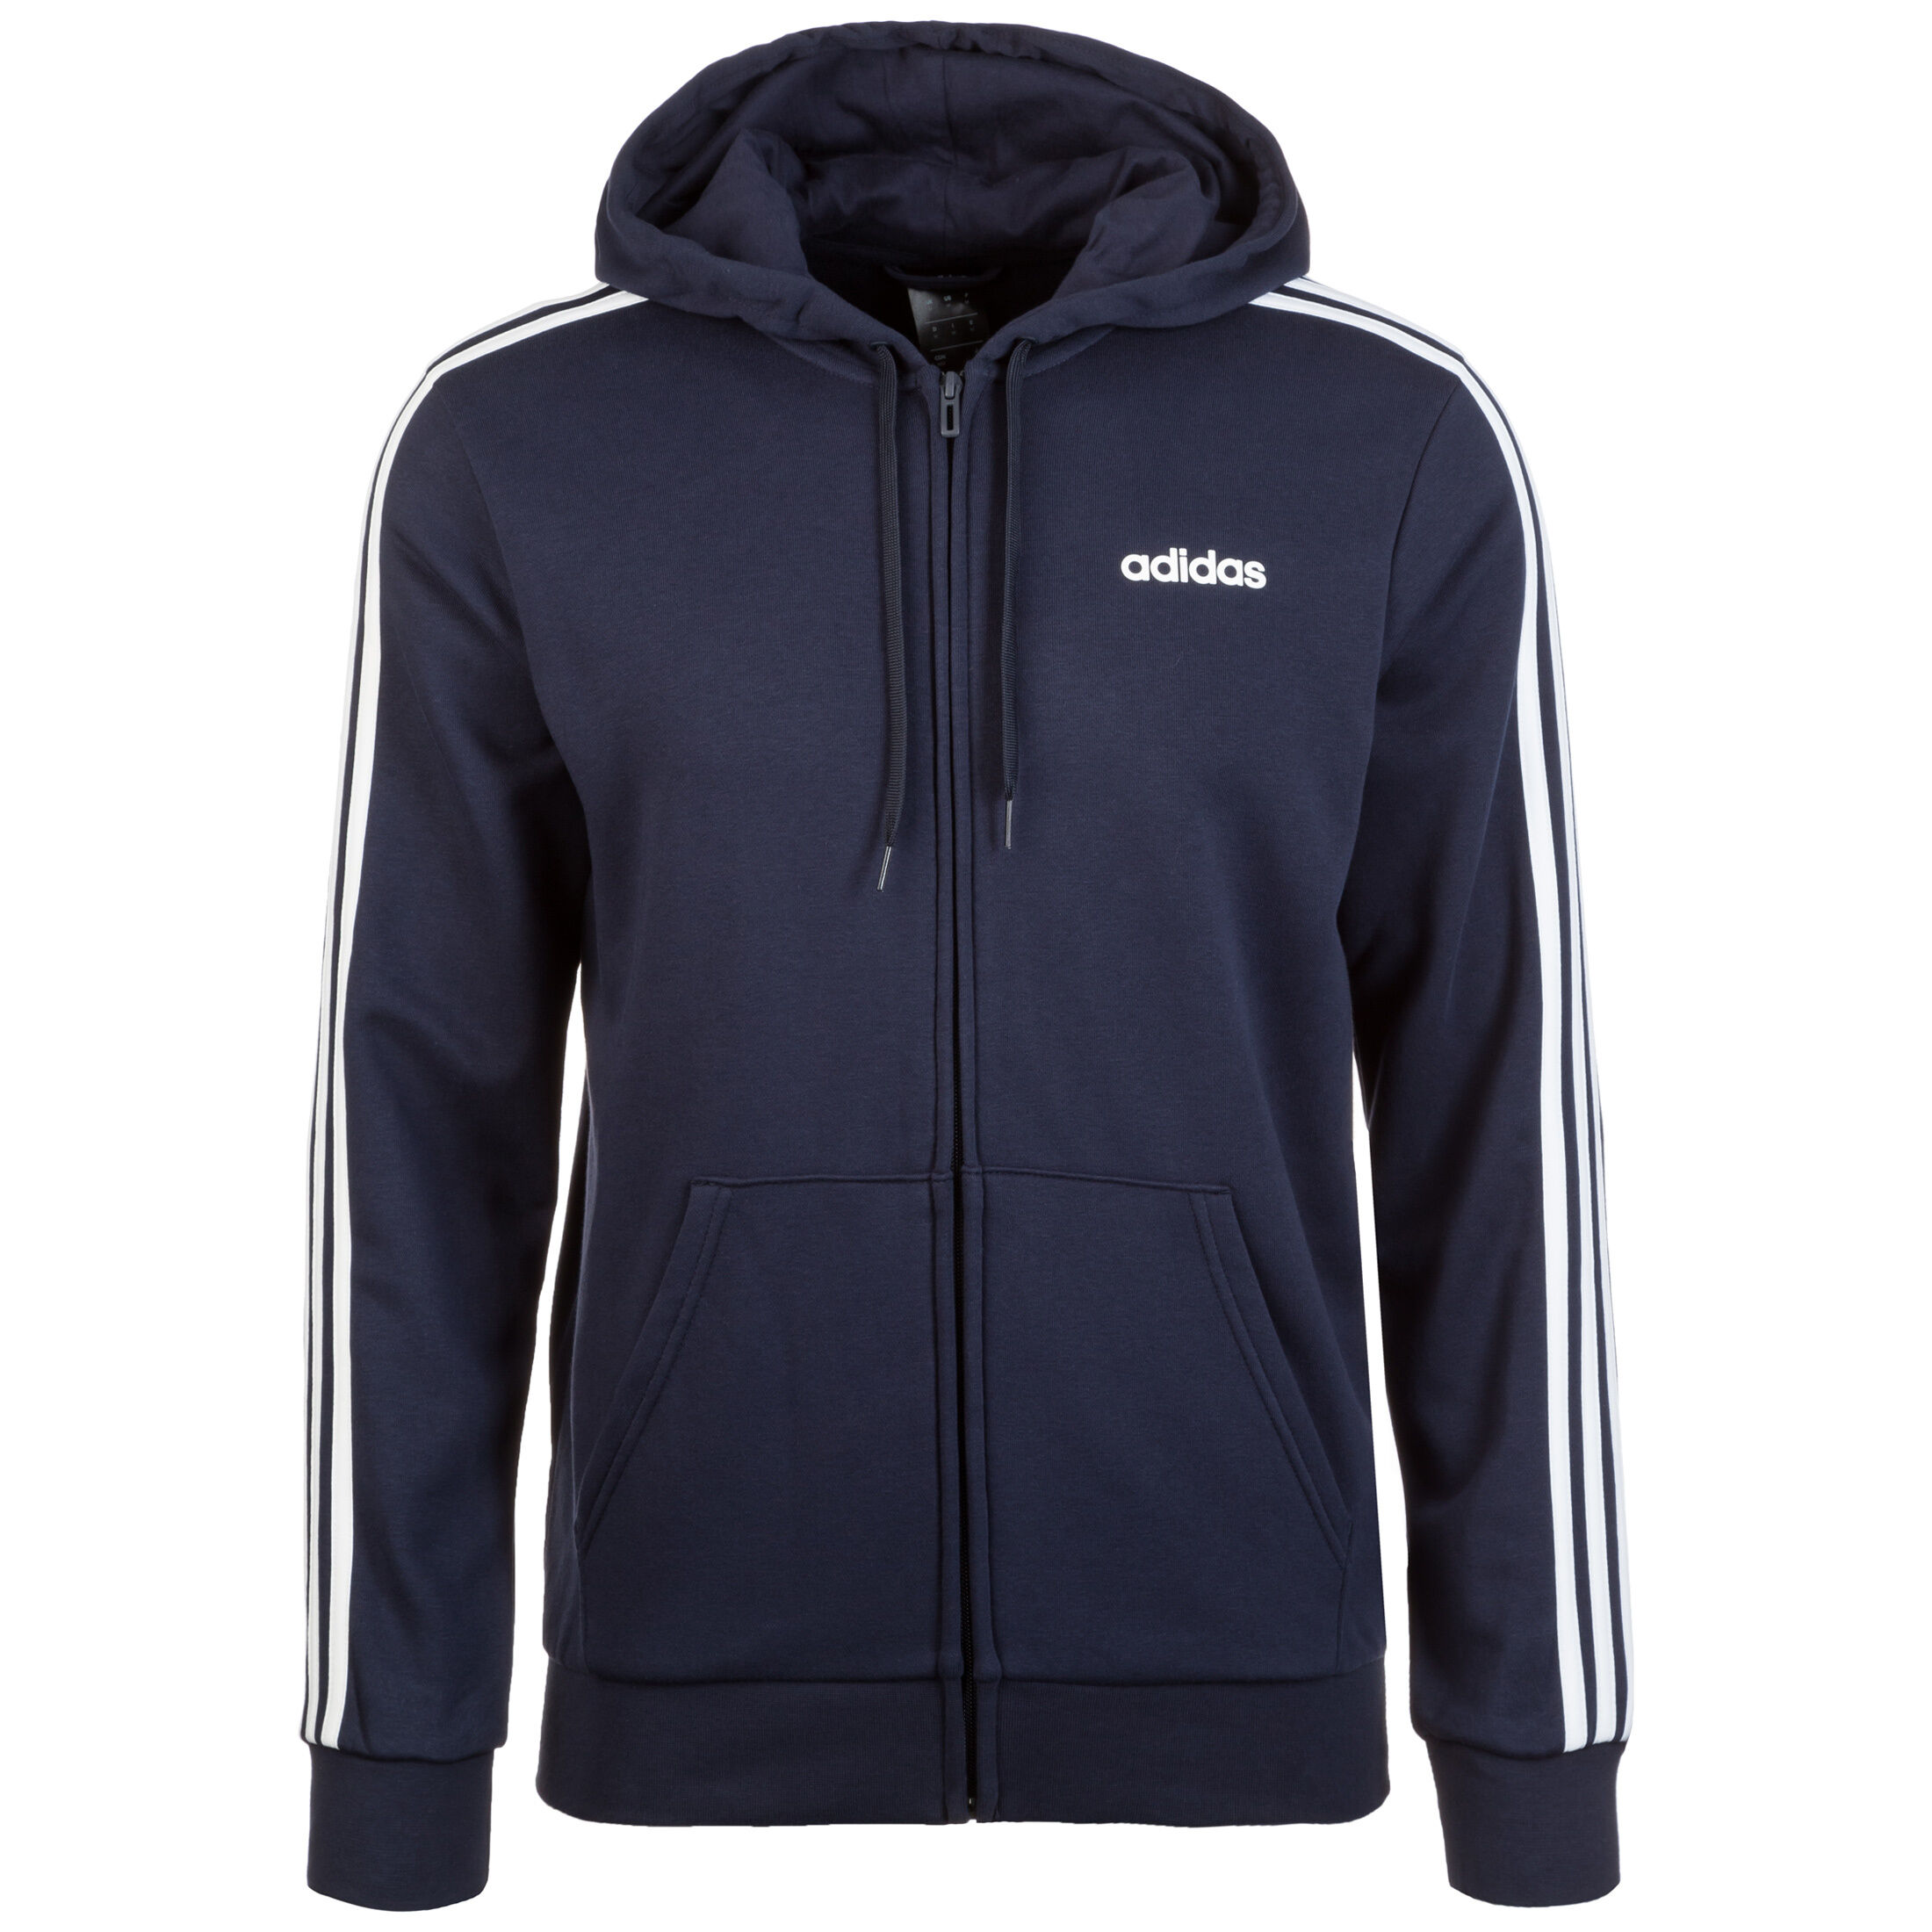 Trainingsbekleidung adidas | bei OUTFITTER